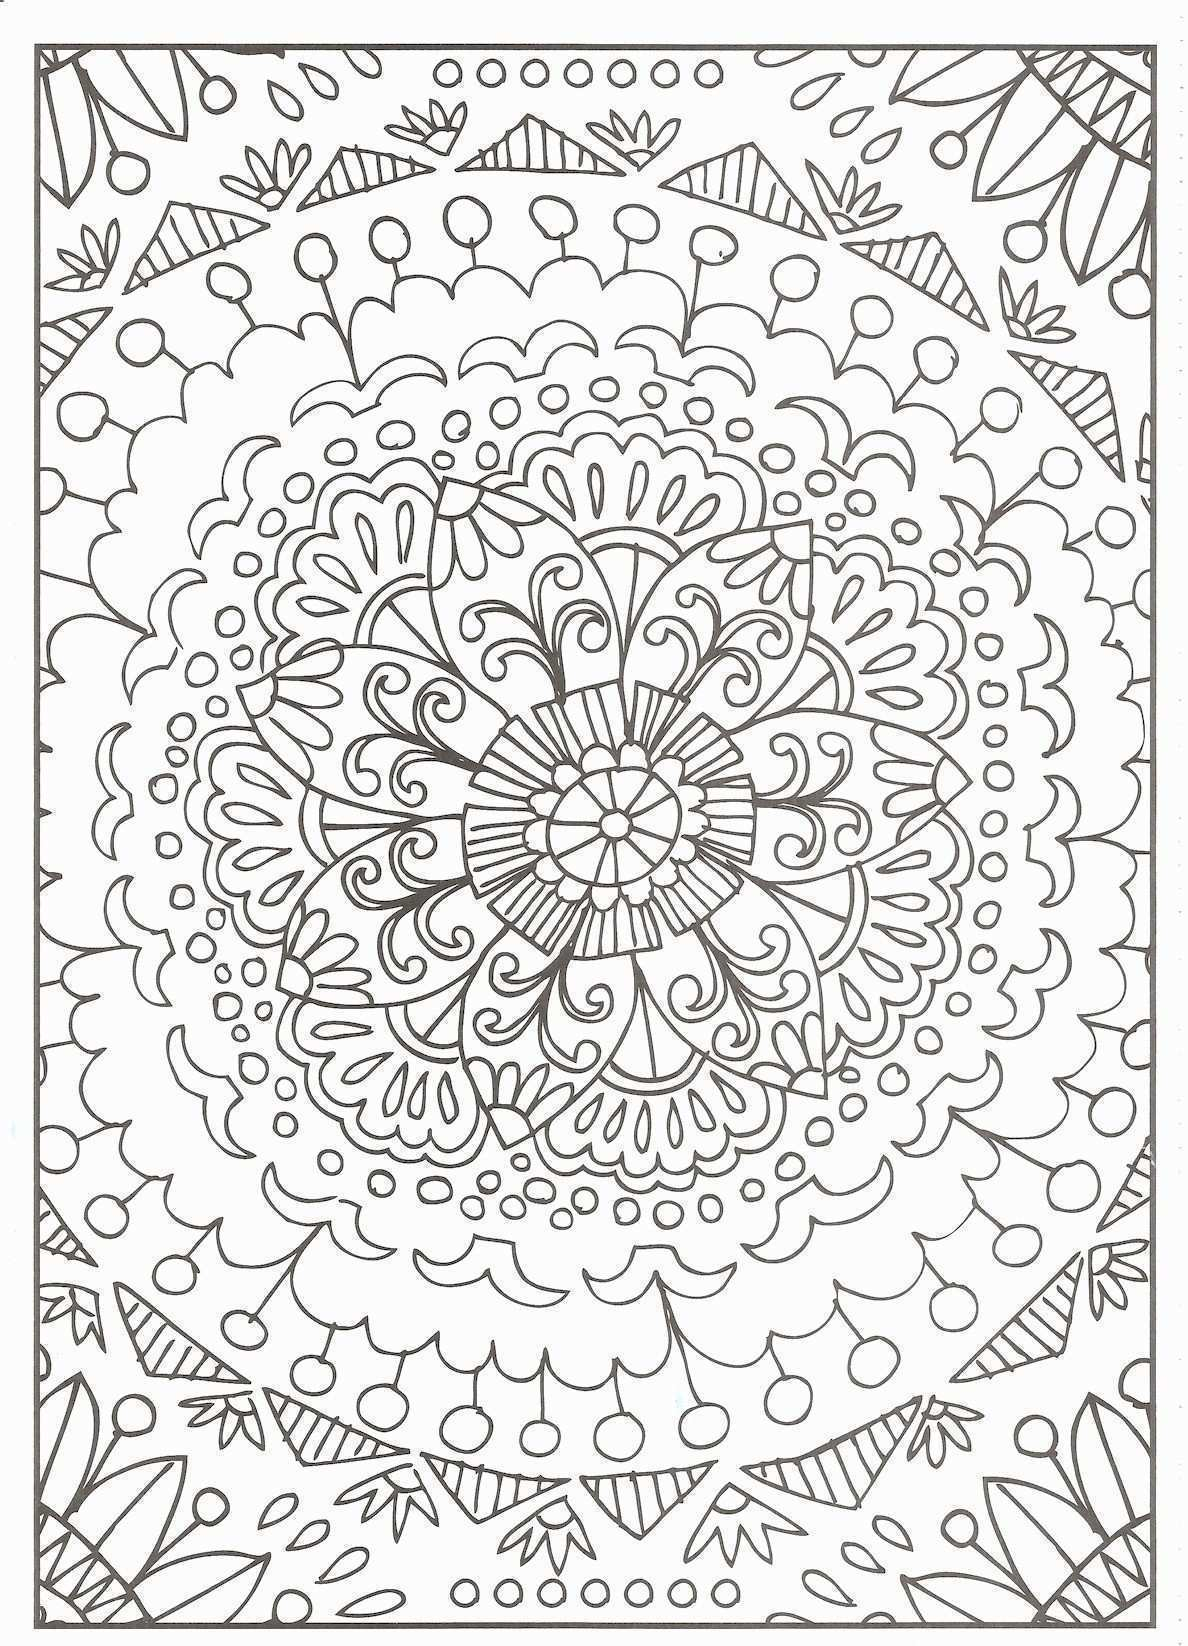 Coloring Pages to Print for Free heathermarxgallery